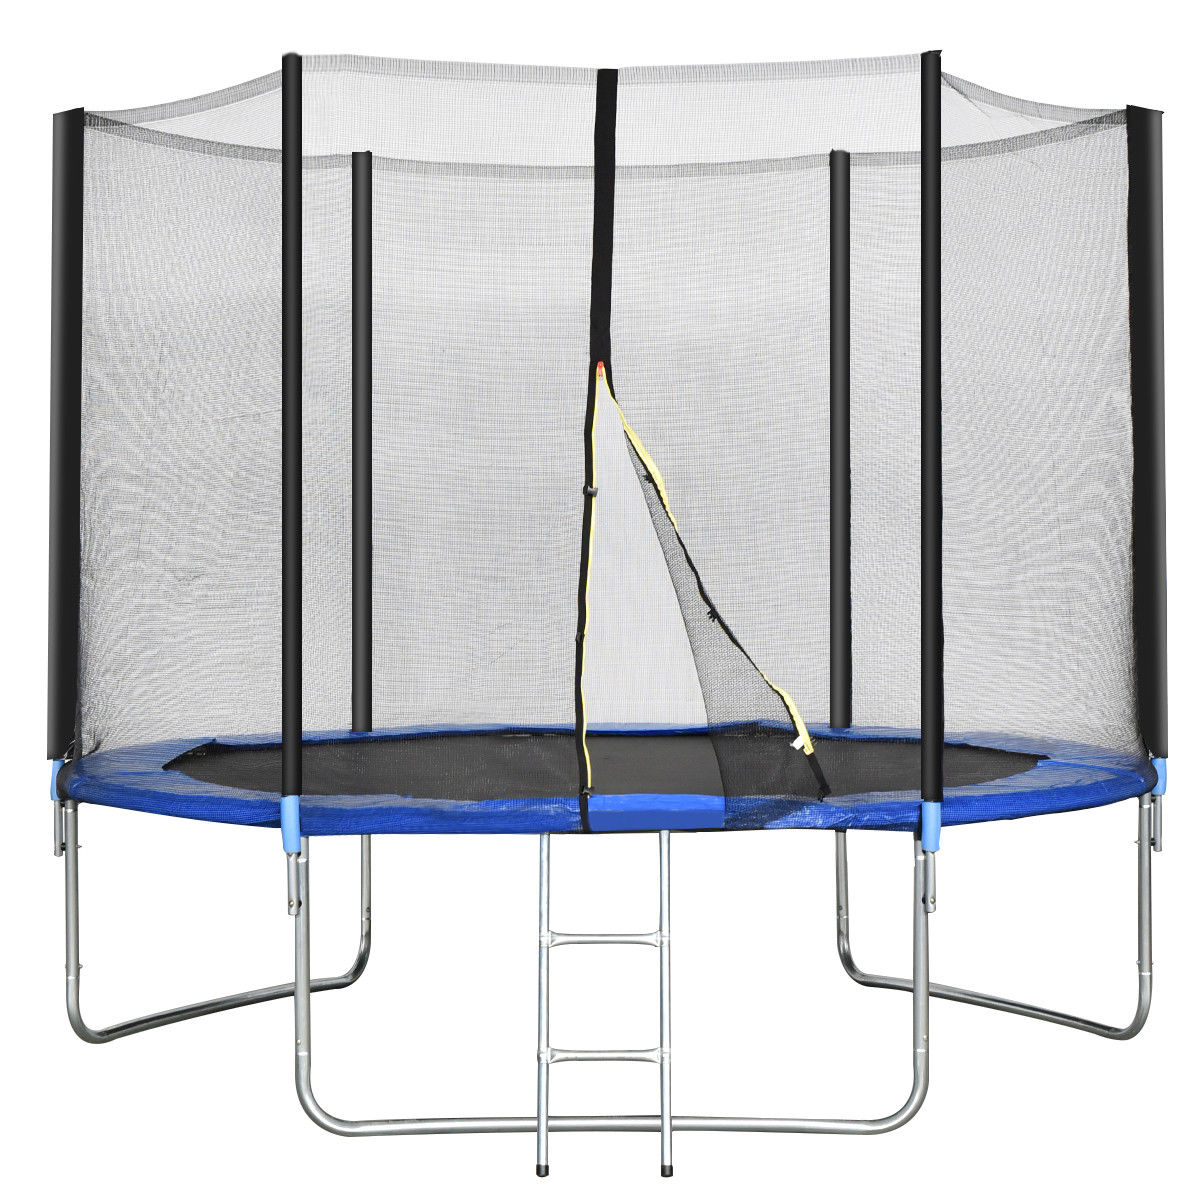 Gymax 10 FT Trampoline Combo Bounce Jump Safety Enclosure Net W/Spring Pad Ladder - image 10 of 10